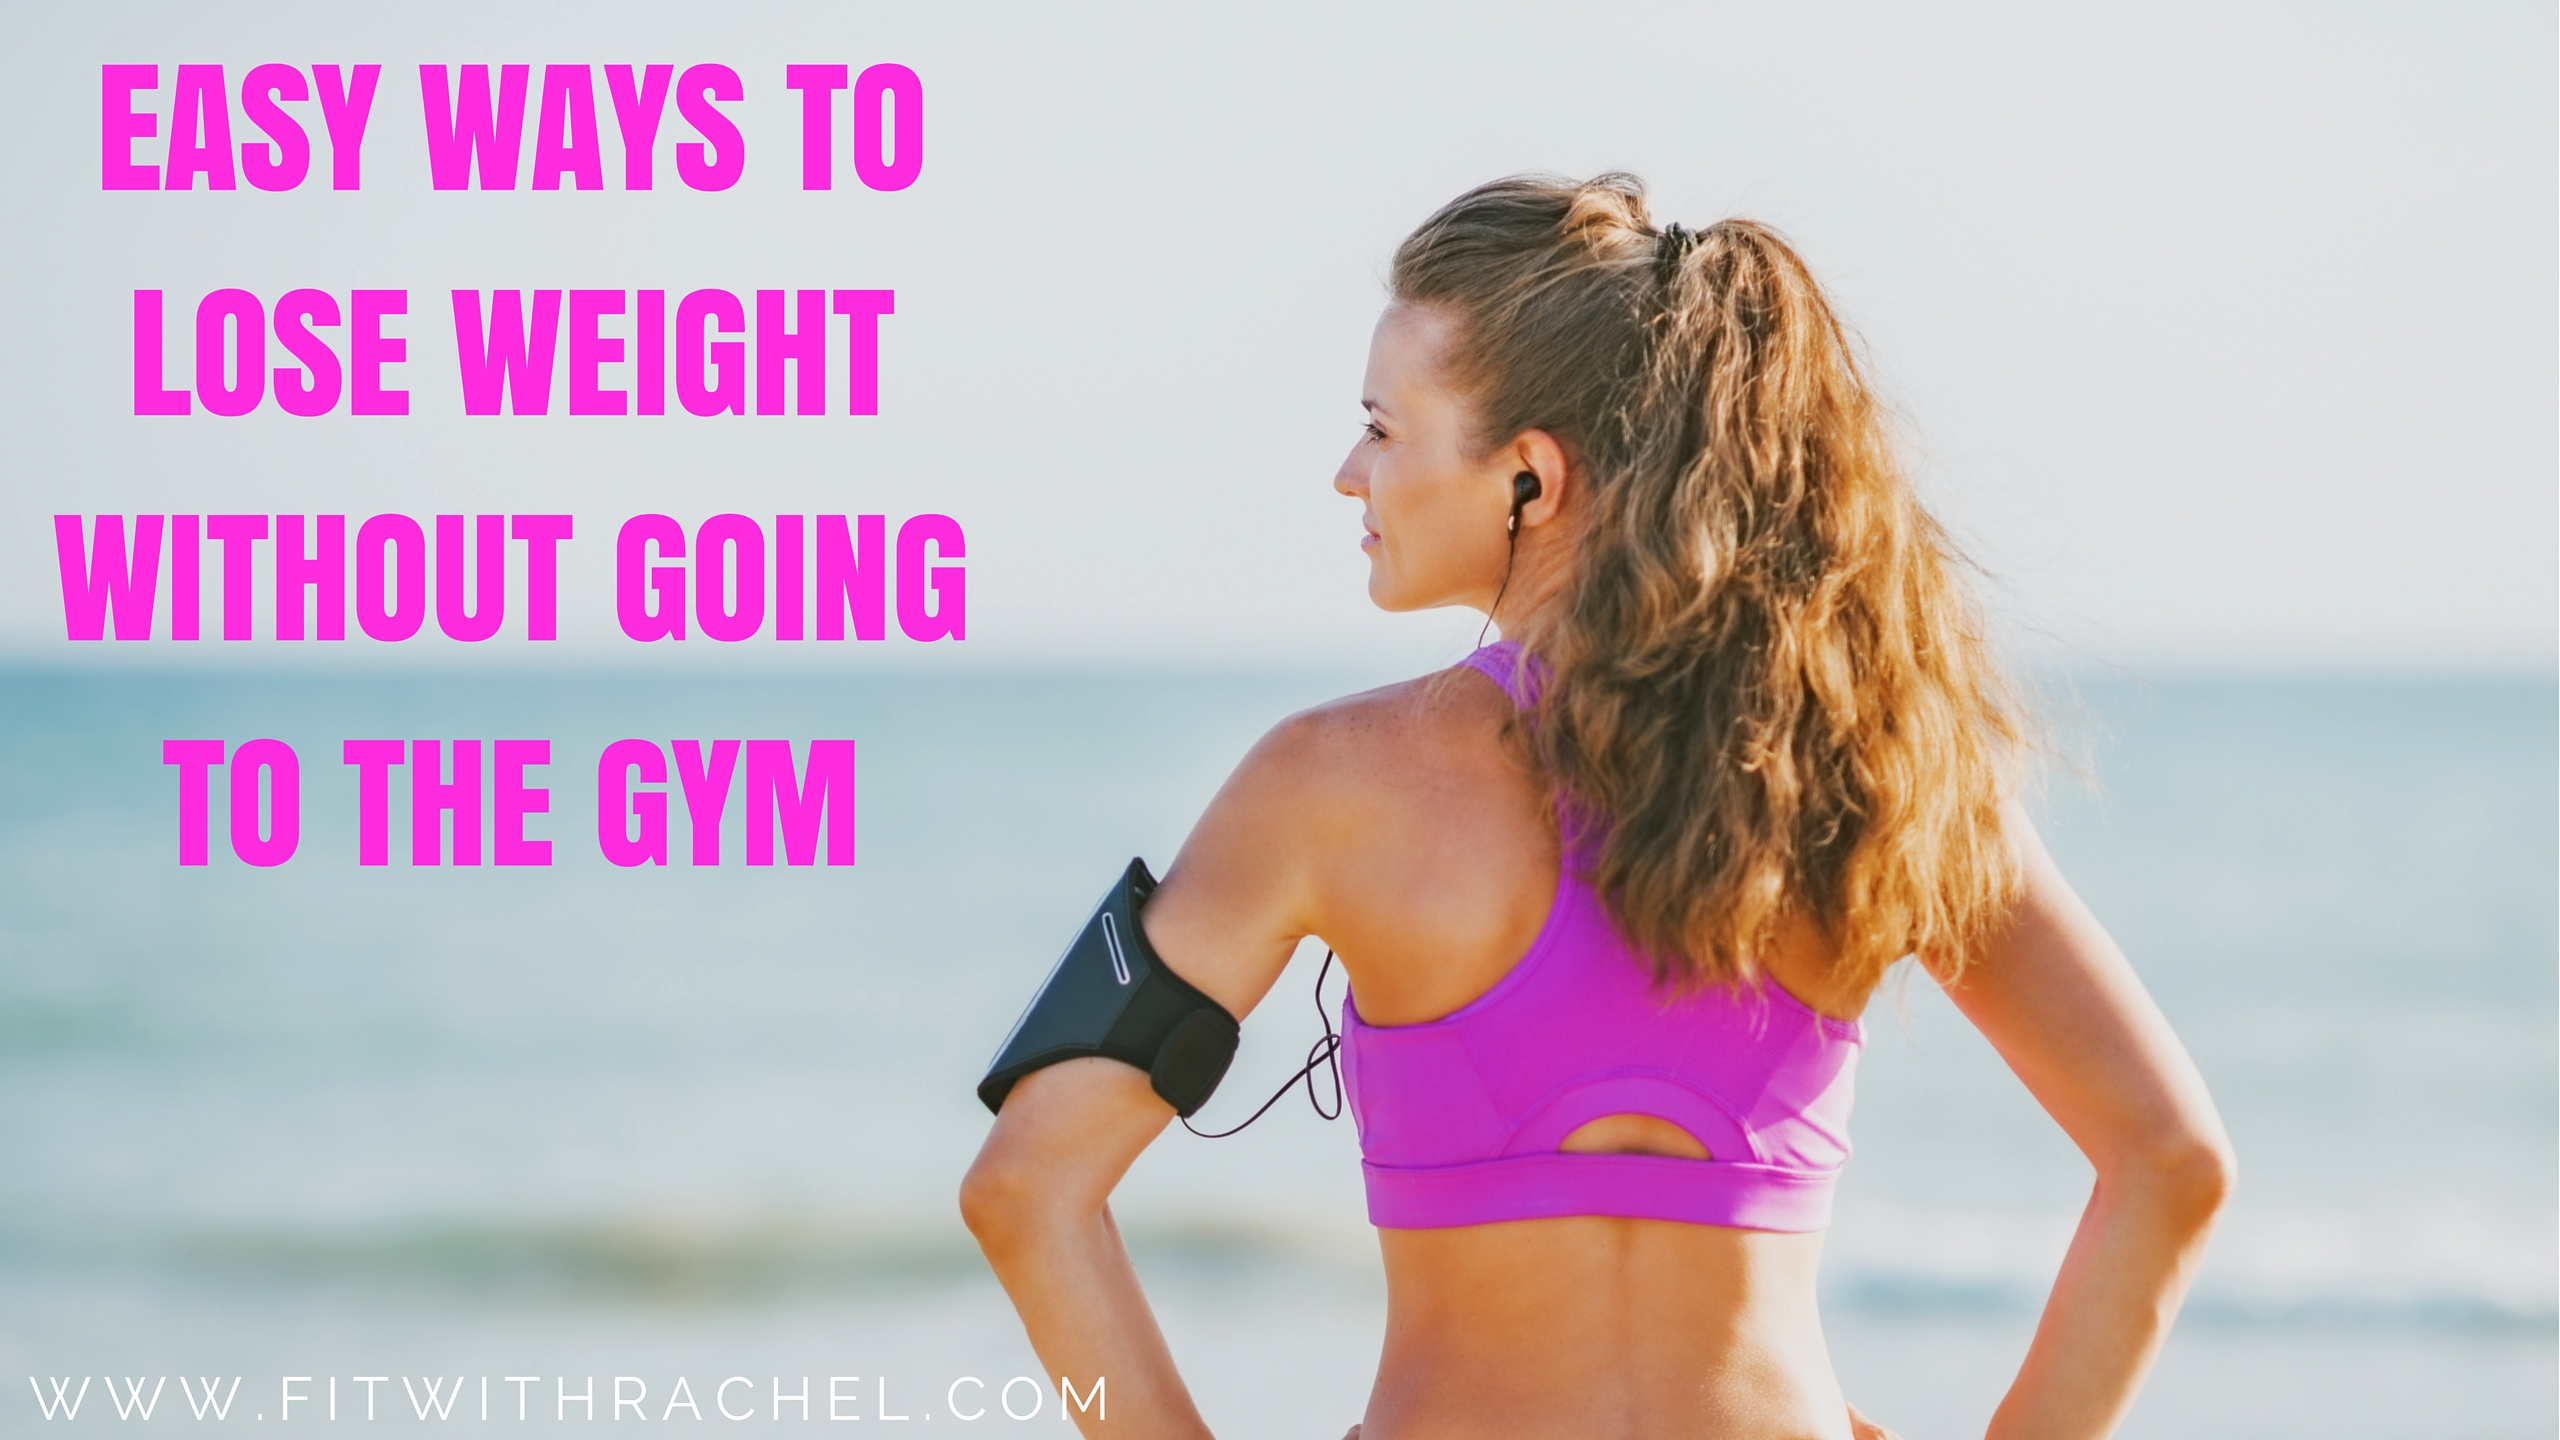 how to lose weight without going Who says you need a gym membership to lose weight and get healthy here are 10 thing you can do to lose weight without it.